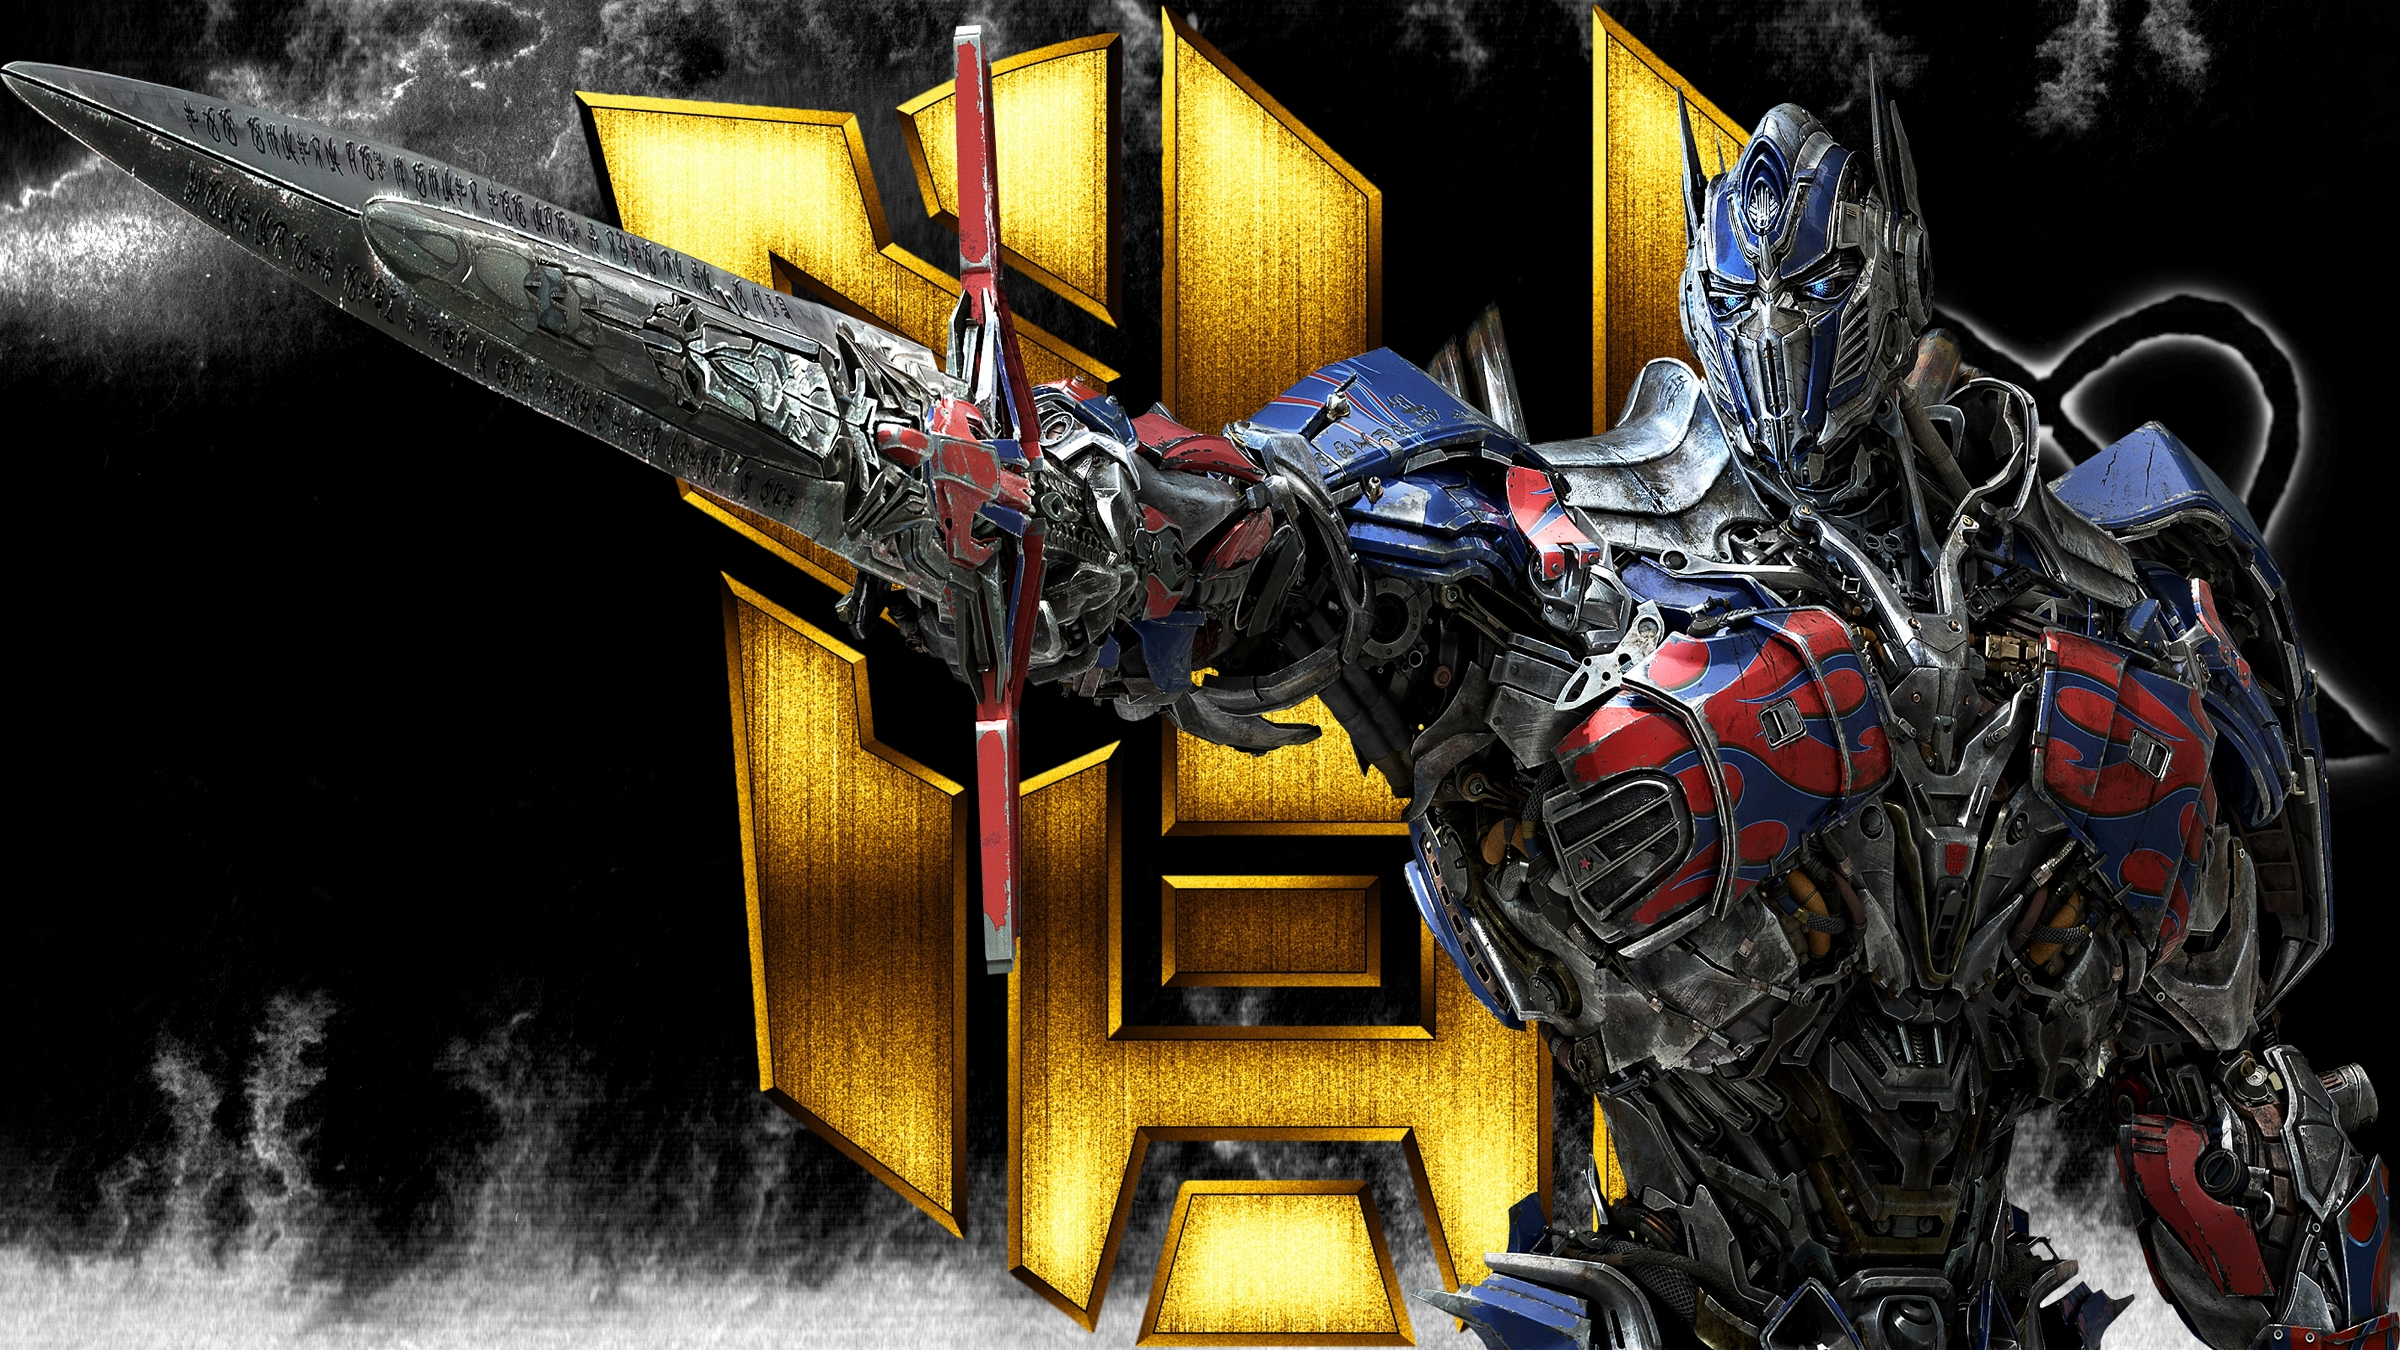 age of extinction 4 optimus prime wallpaper